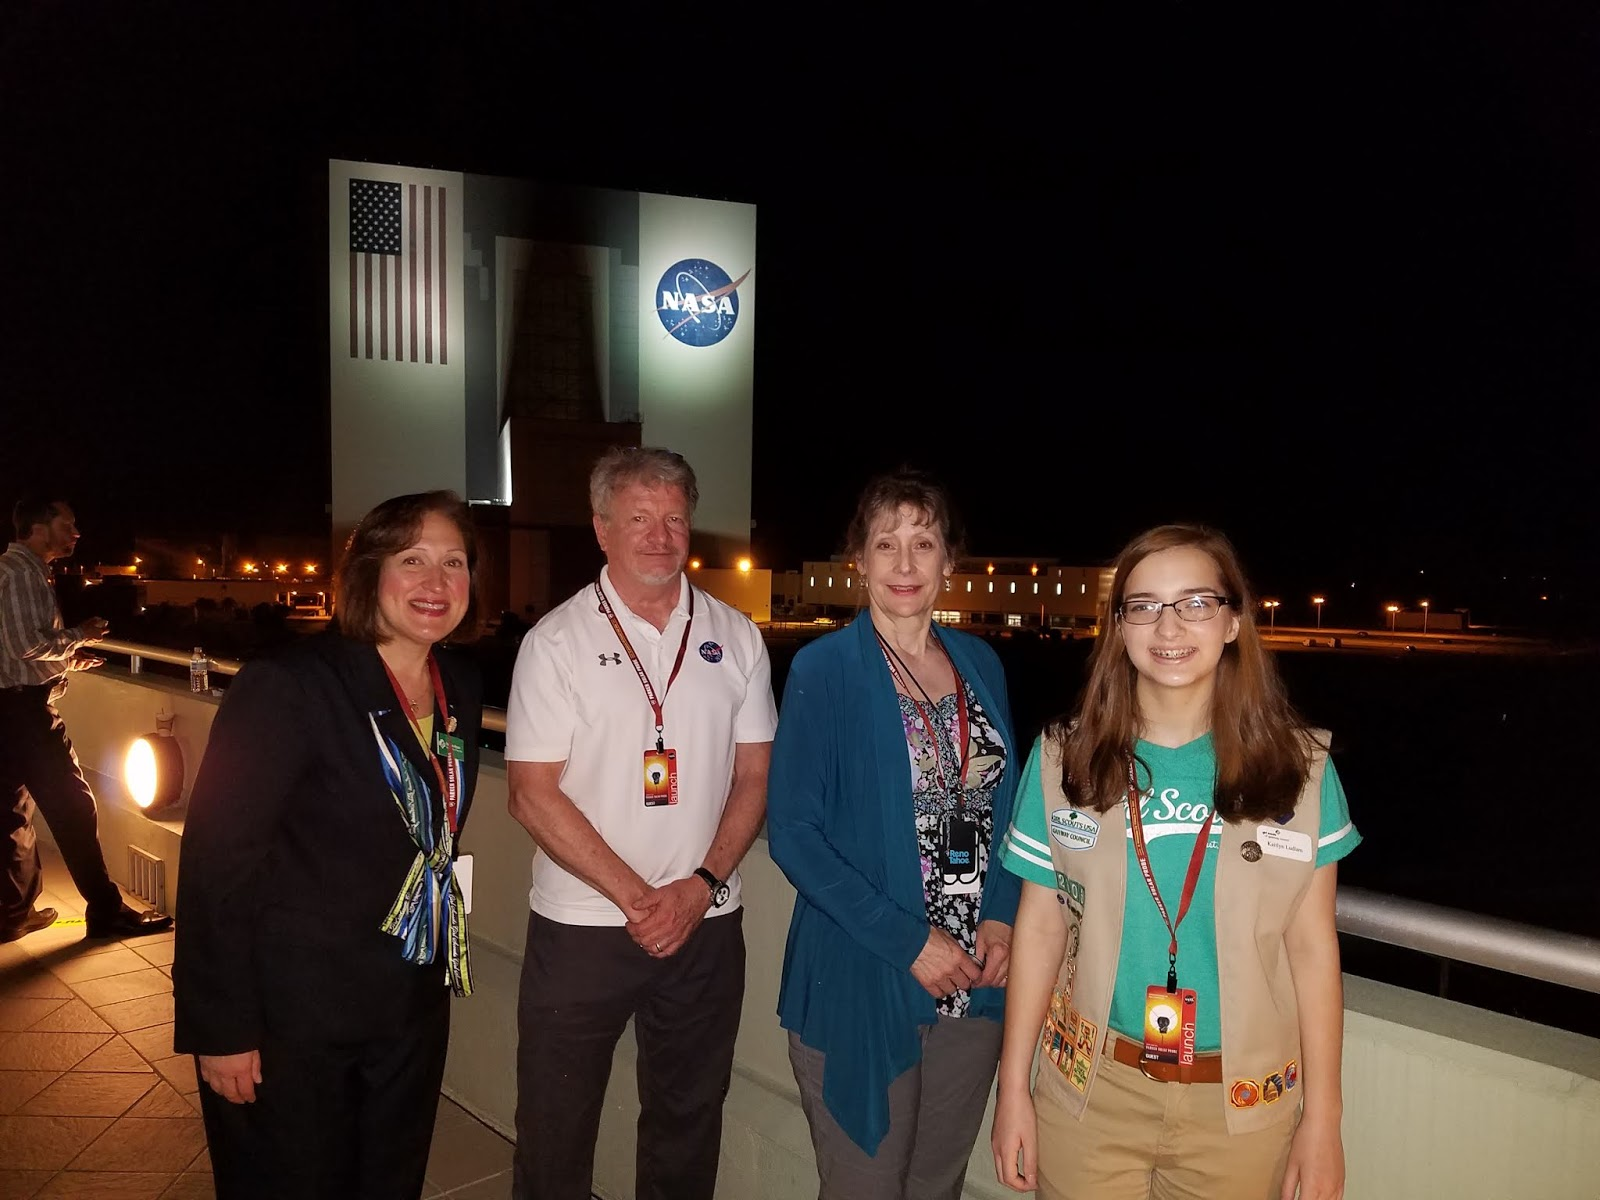 Denise Ryan, Girl Scouts of the USA; SETI Institute CEO Bill Diamond; SETI Institute Acting Director, Center for Education, Pamela Harman; and Girl Scout Kaitlyn